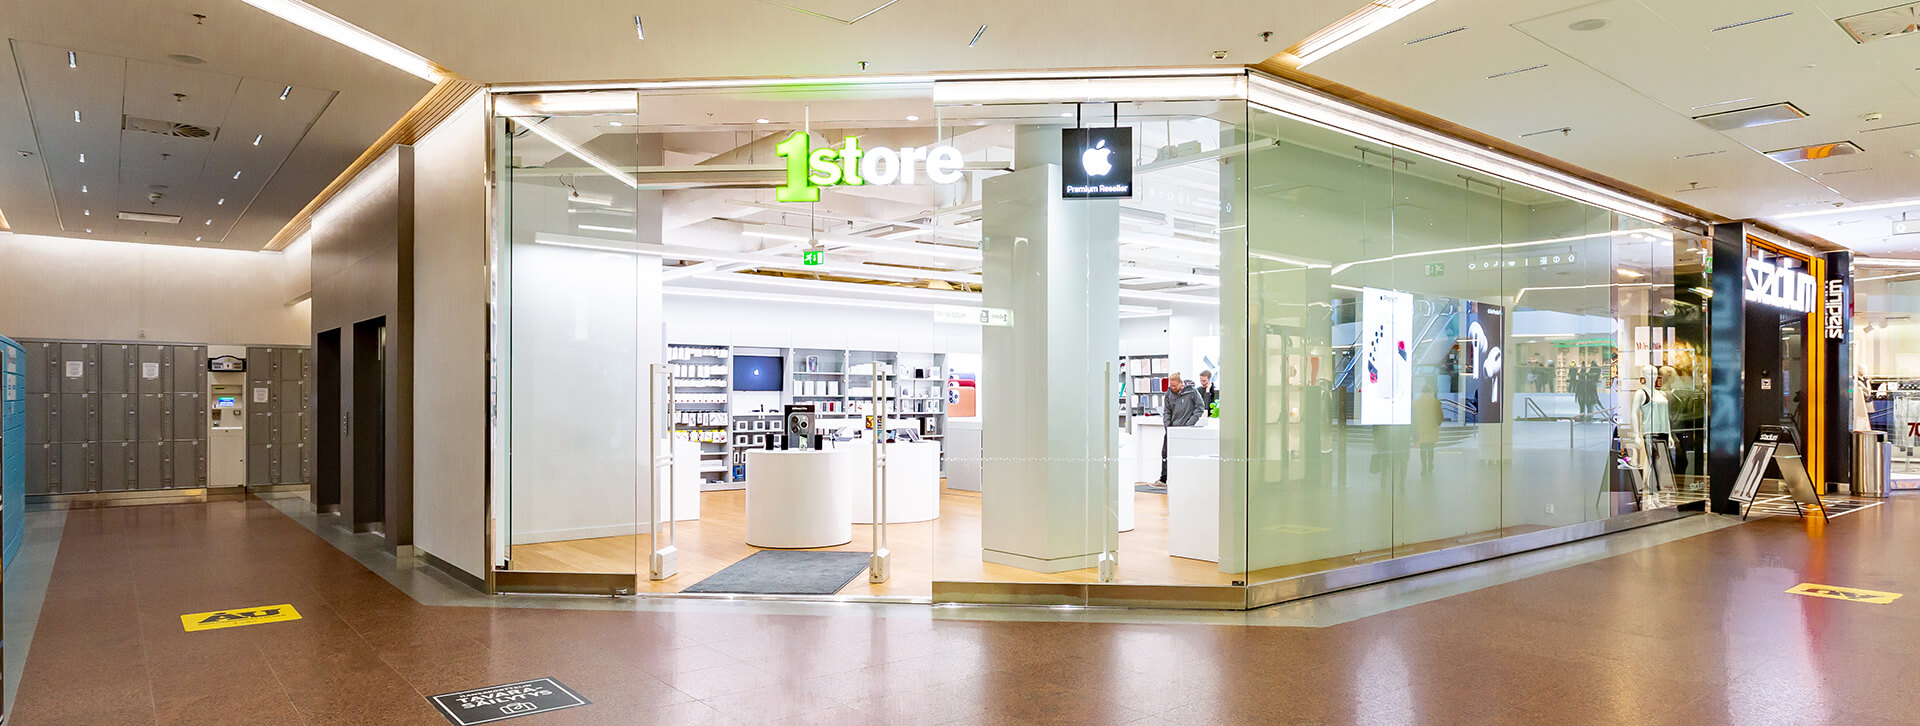 1-store